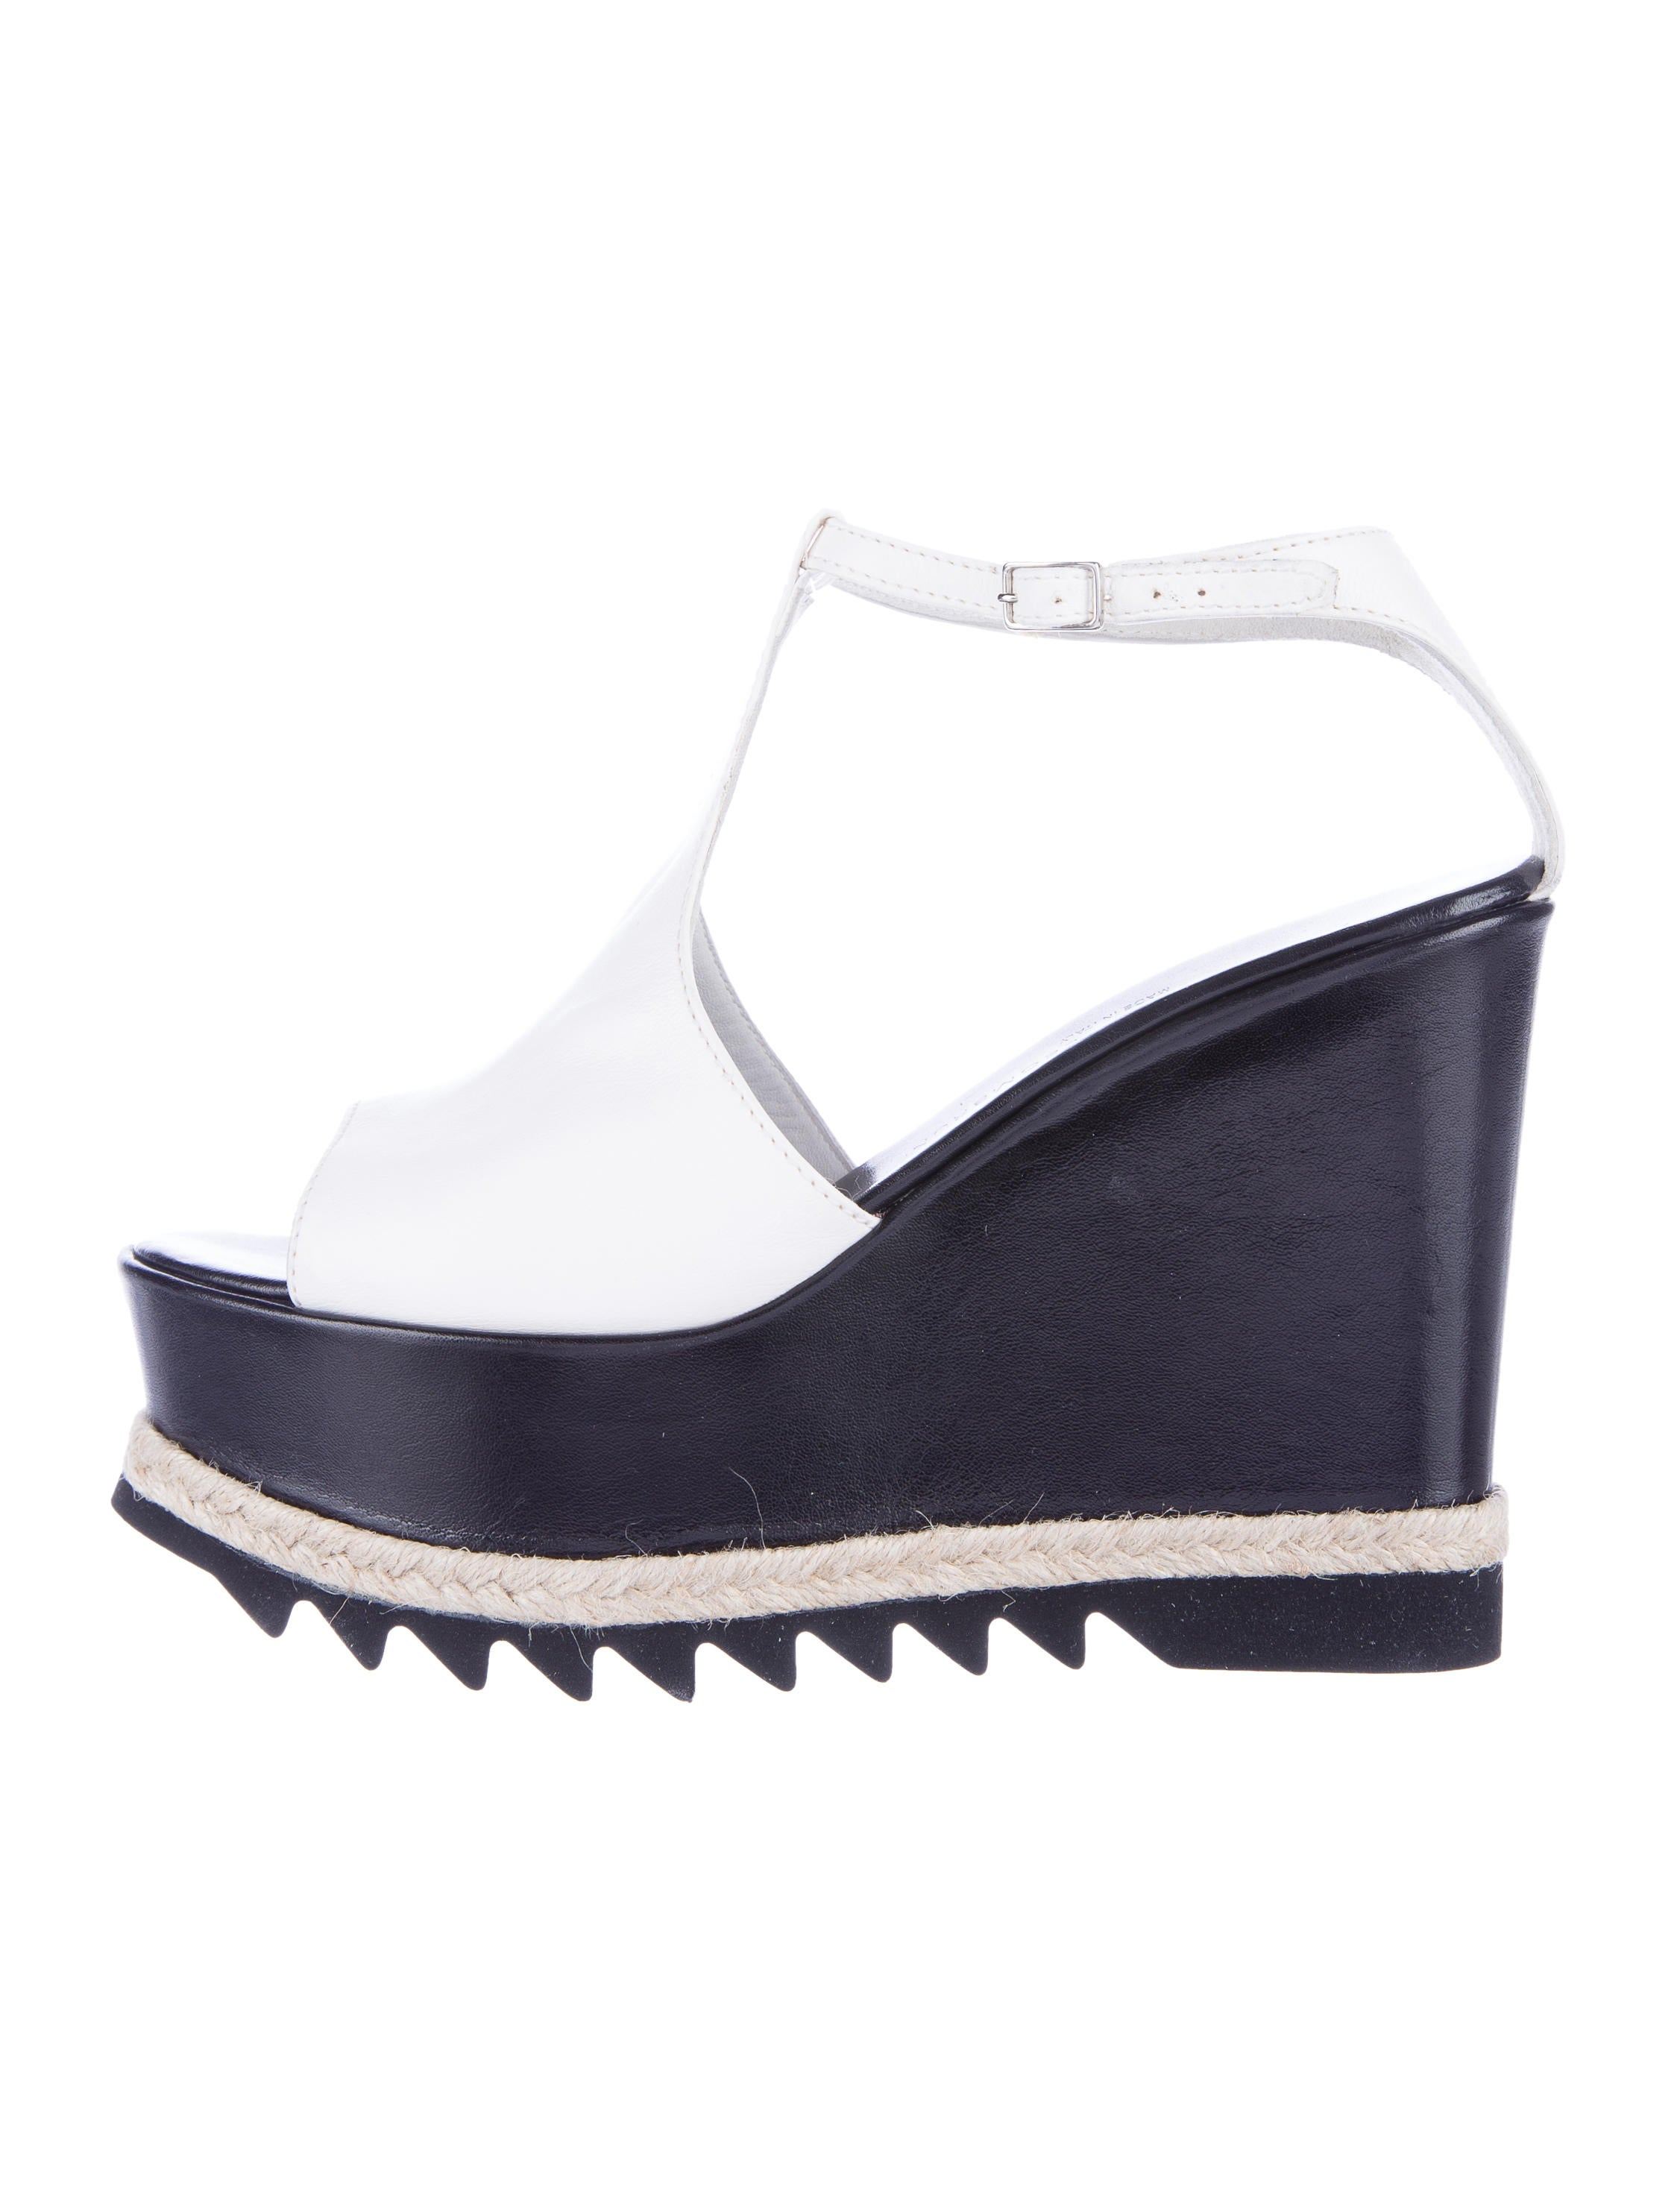 agl leather wedge sandals shoes wagle20086 the realreal